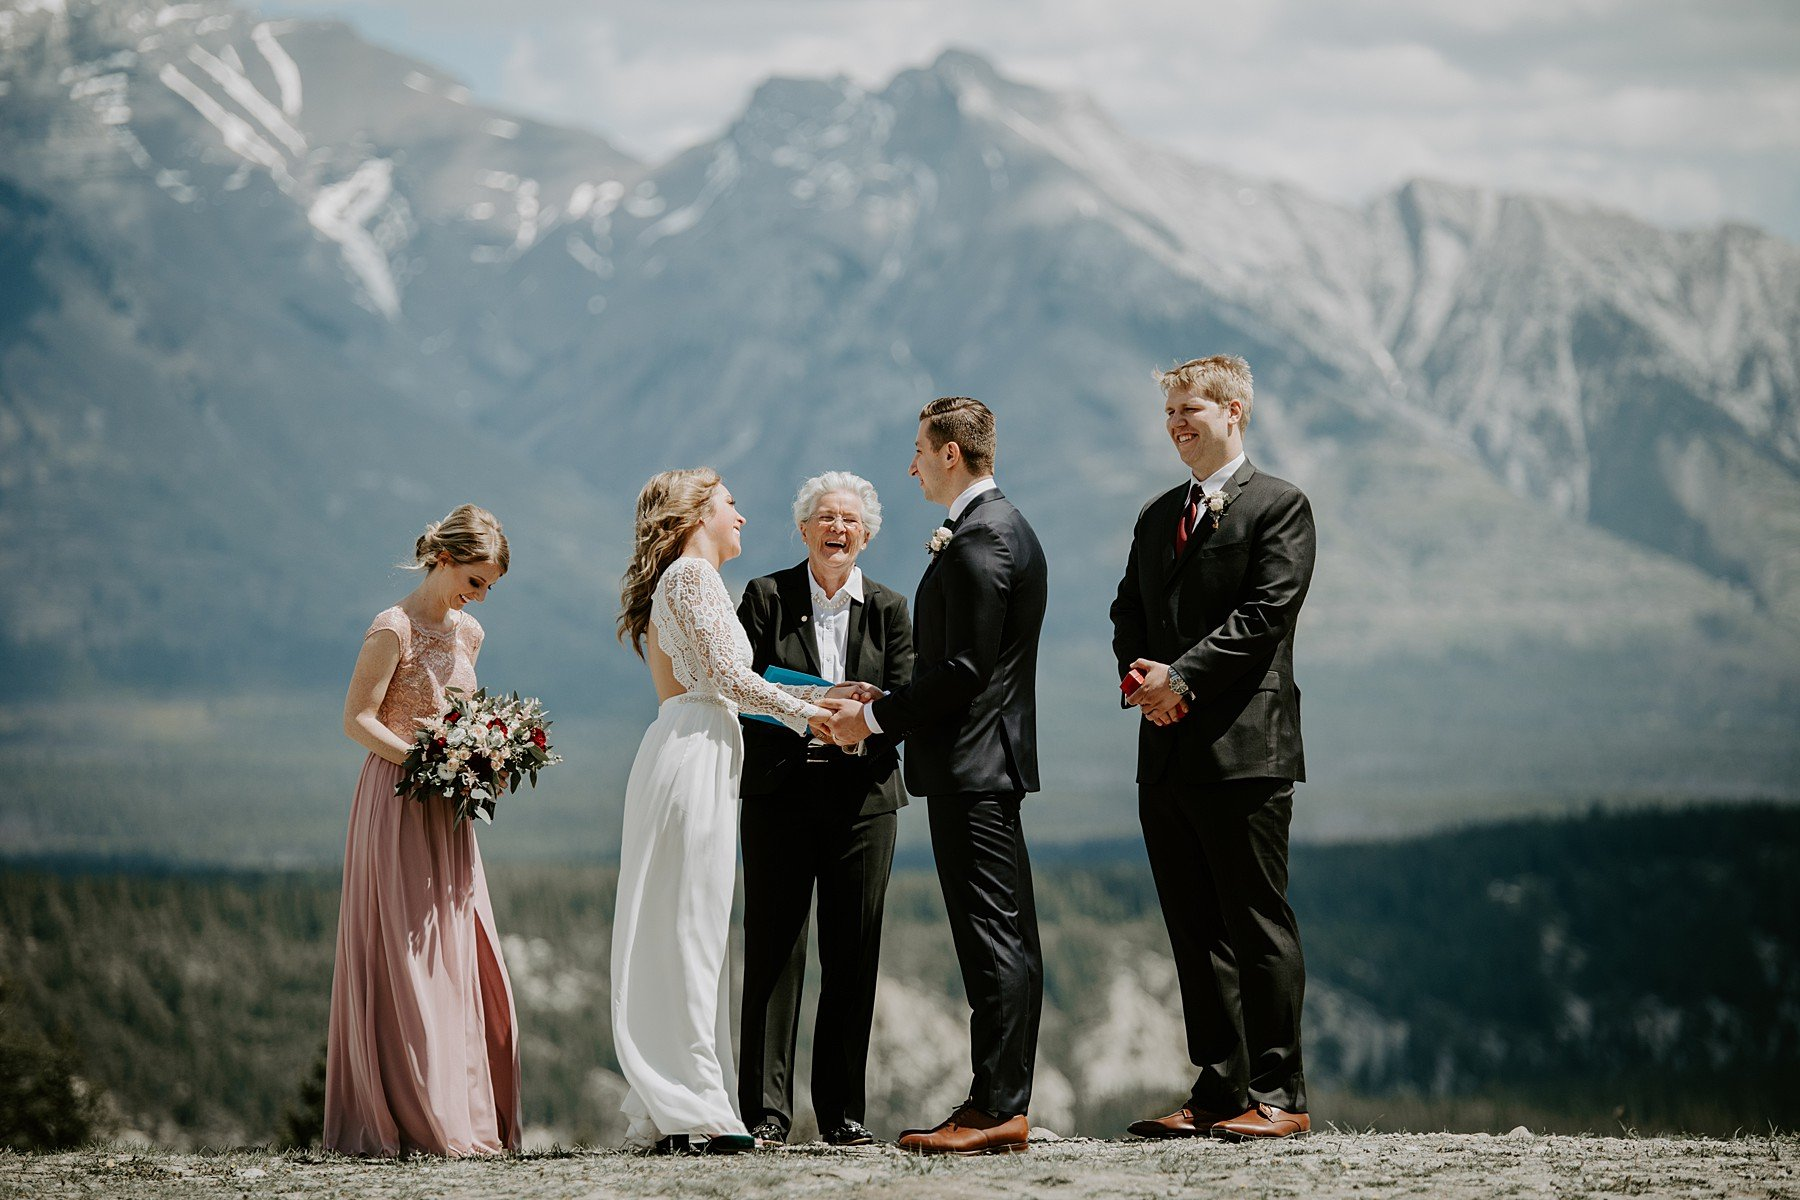 Bride wearing Lulus wedding dress during her Banff Elopement ceremony at Tunnel Mountain